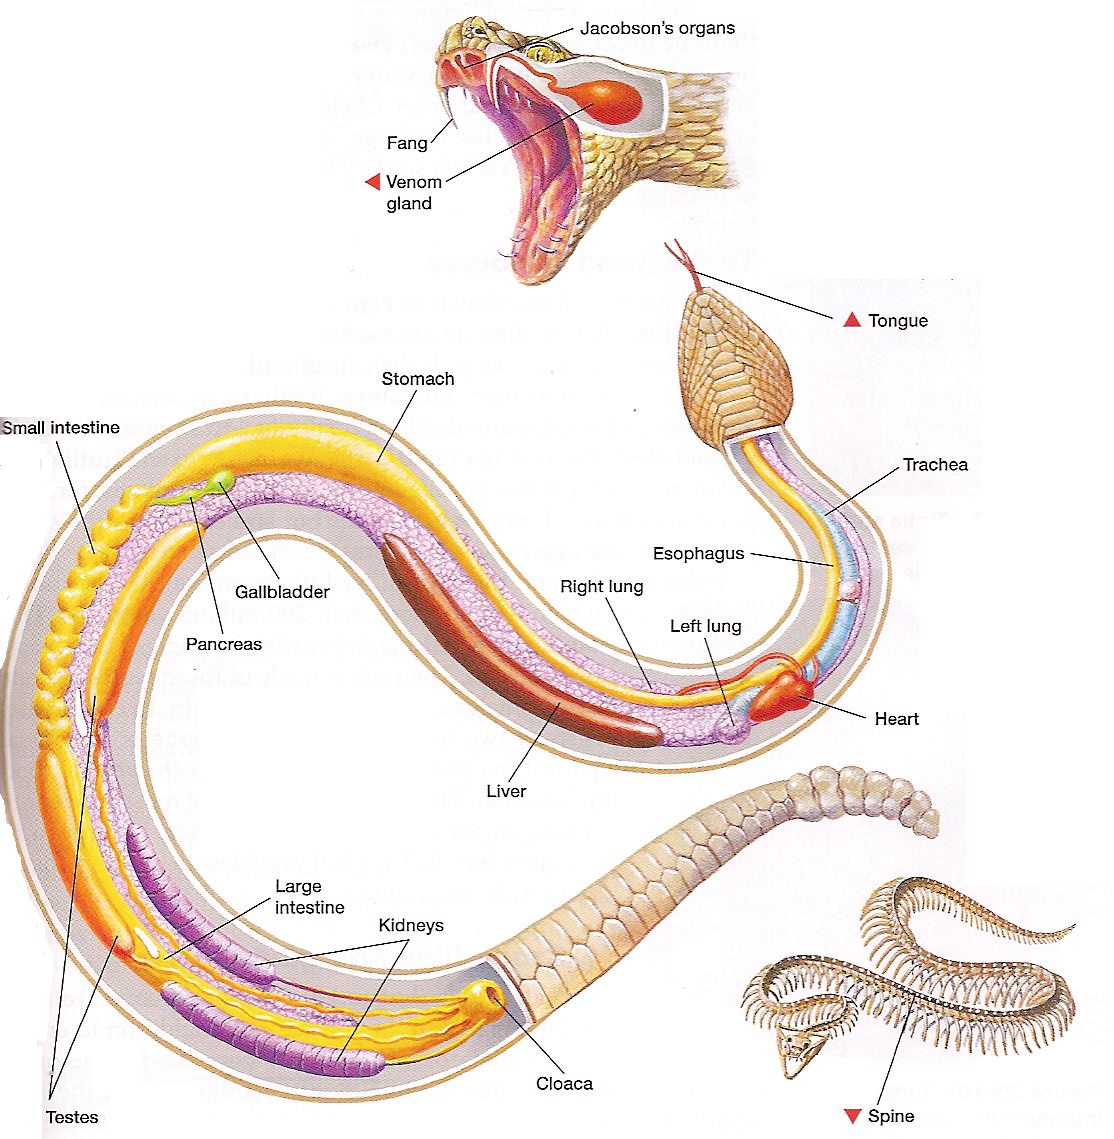 Snake anatomy and physiology pet education The anatomy